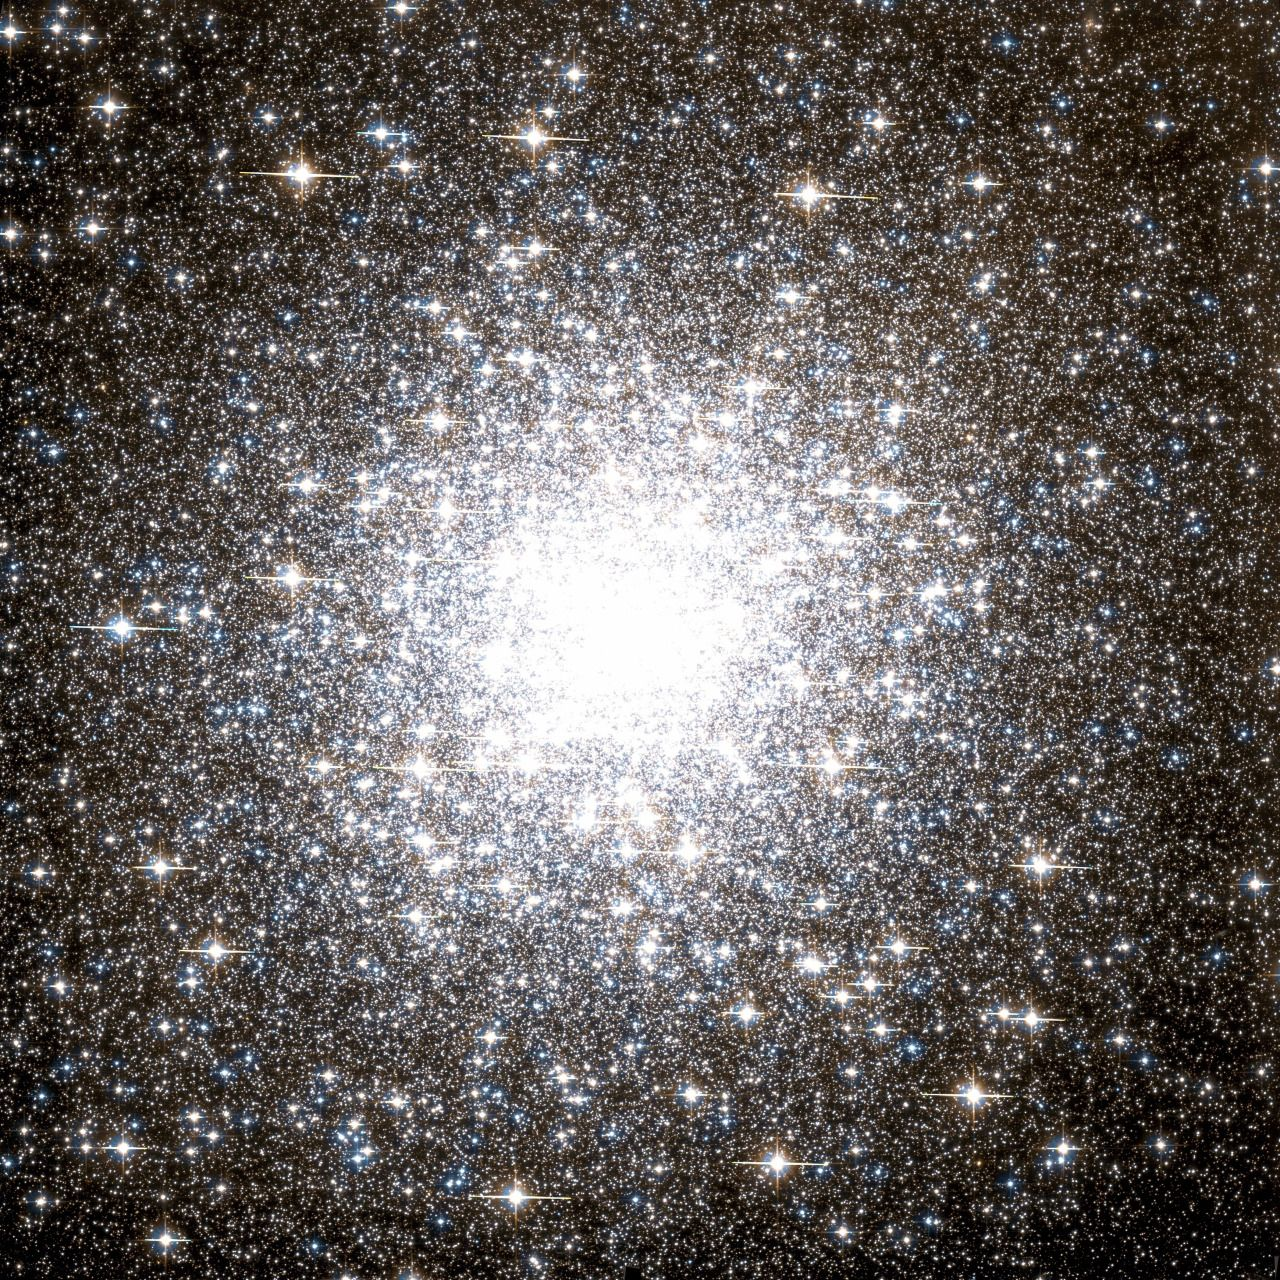 Astronomicalwonders 150 000 Stars The Messier 2 Star Cluster This Massive Star Cluster The Messier 2 Globular Cluster Star Cluster Aquarius Constellation